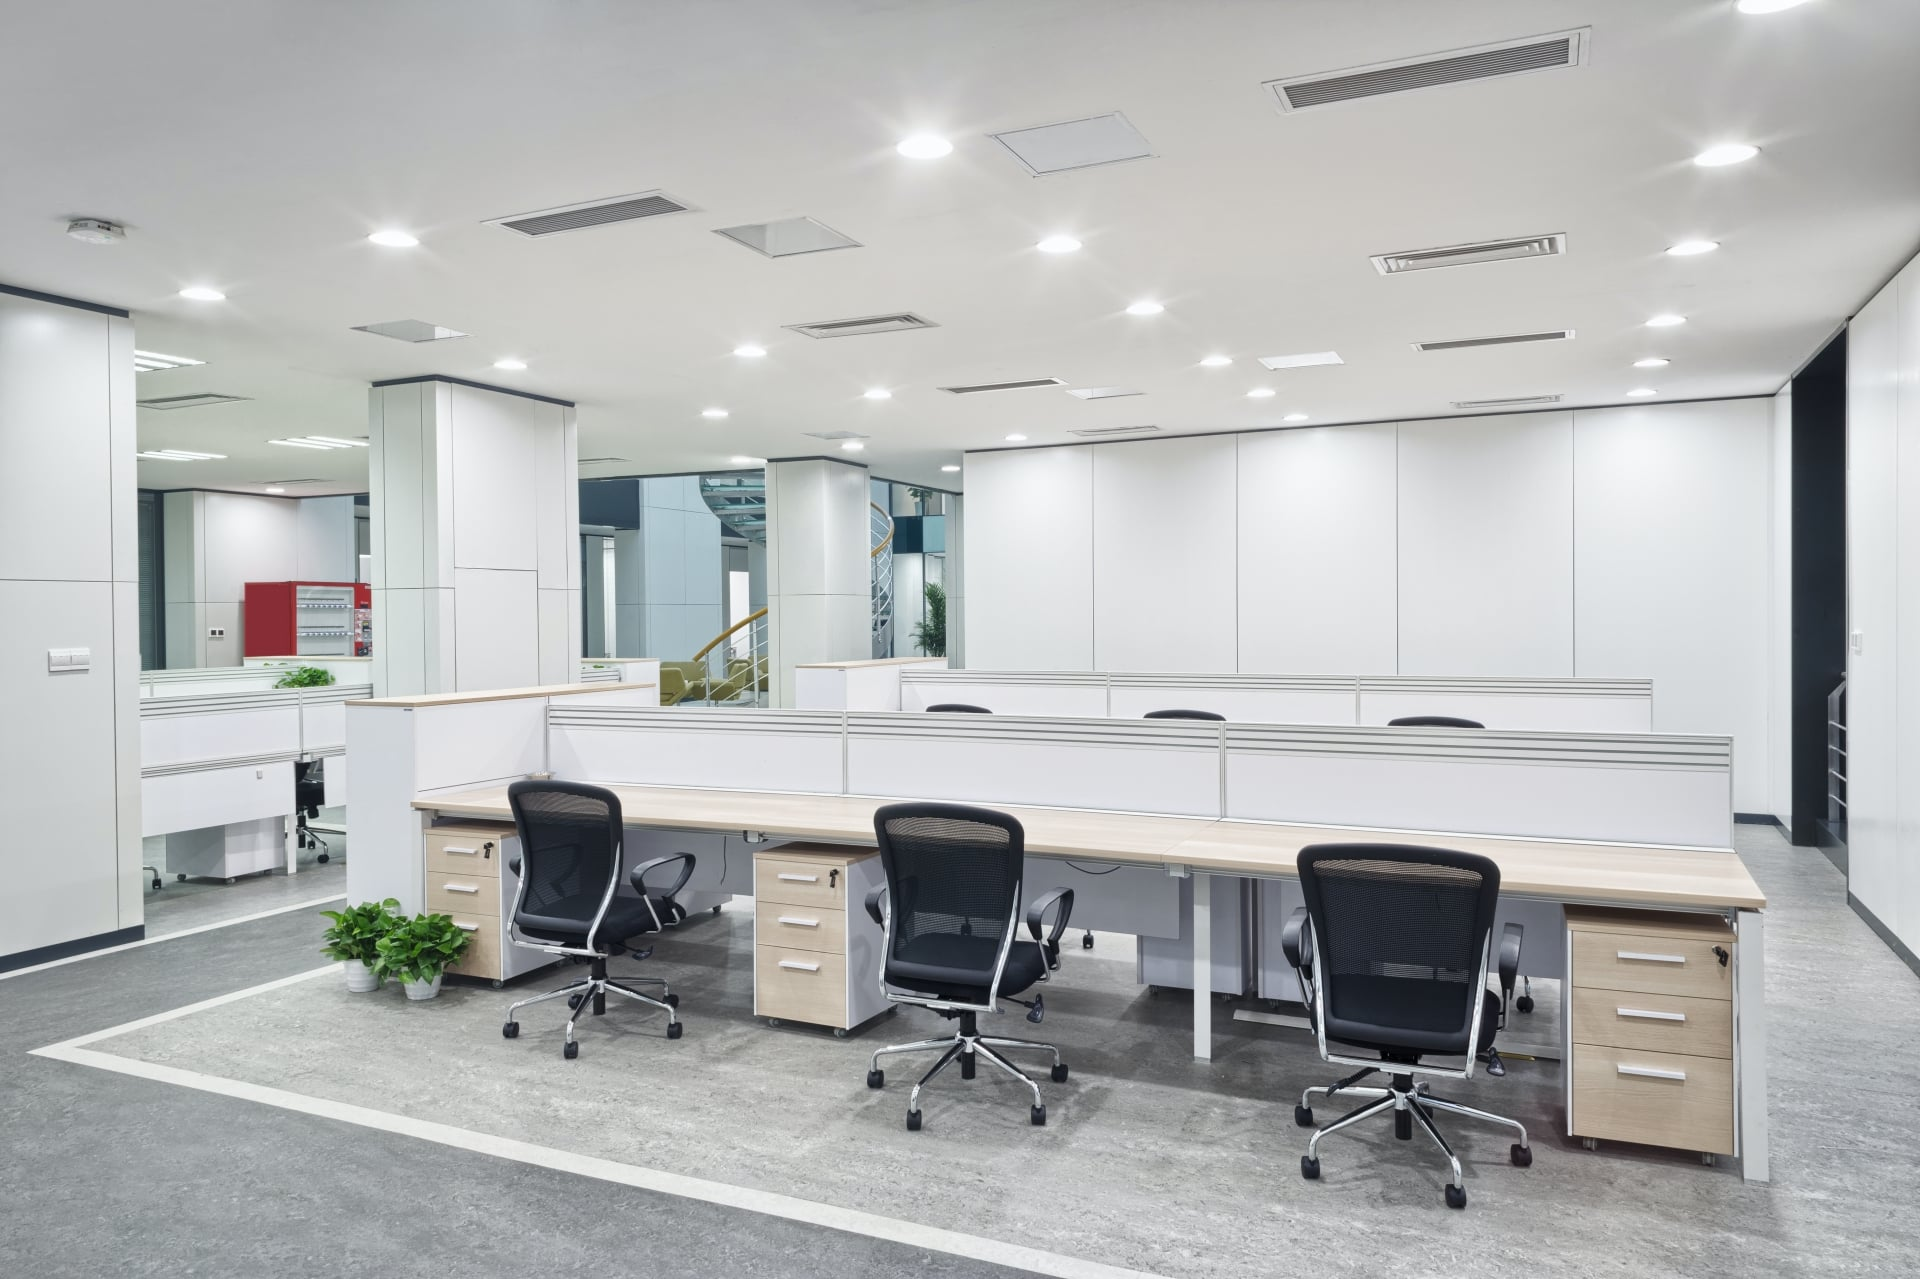 office with low cubicle walls and office chairs